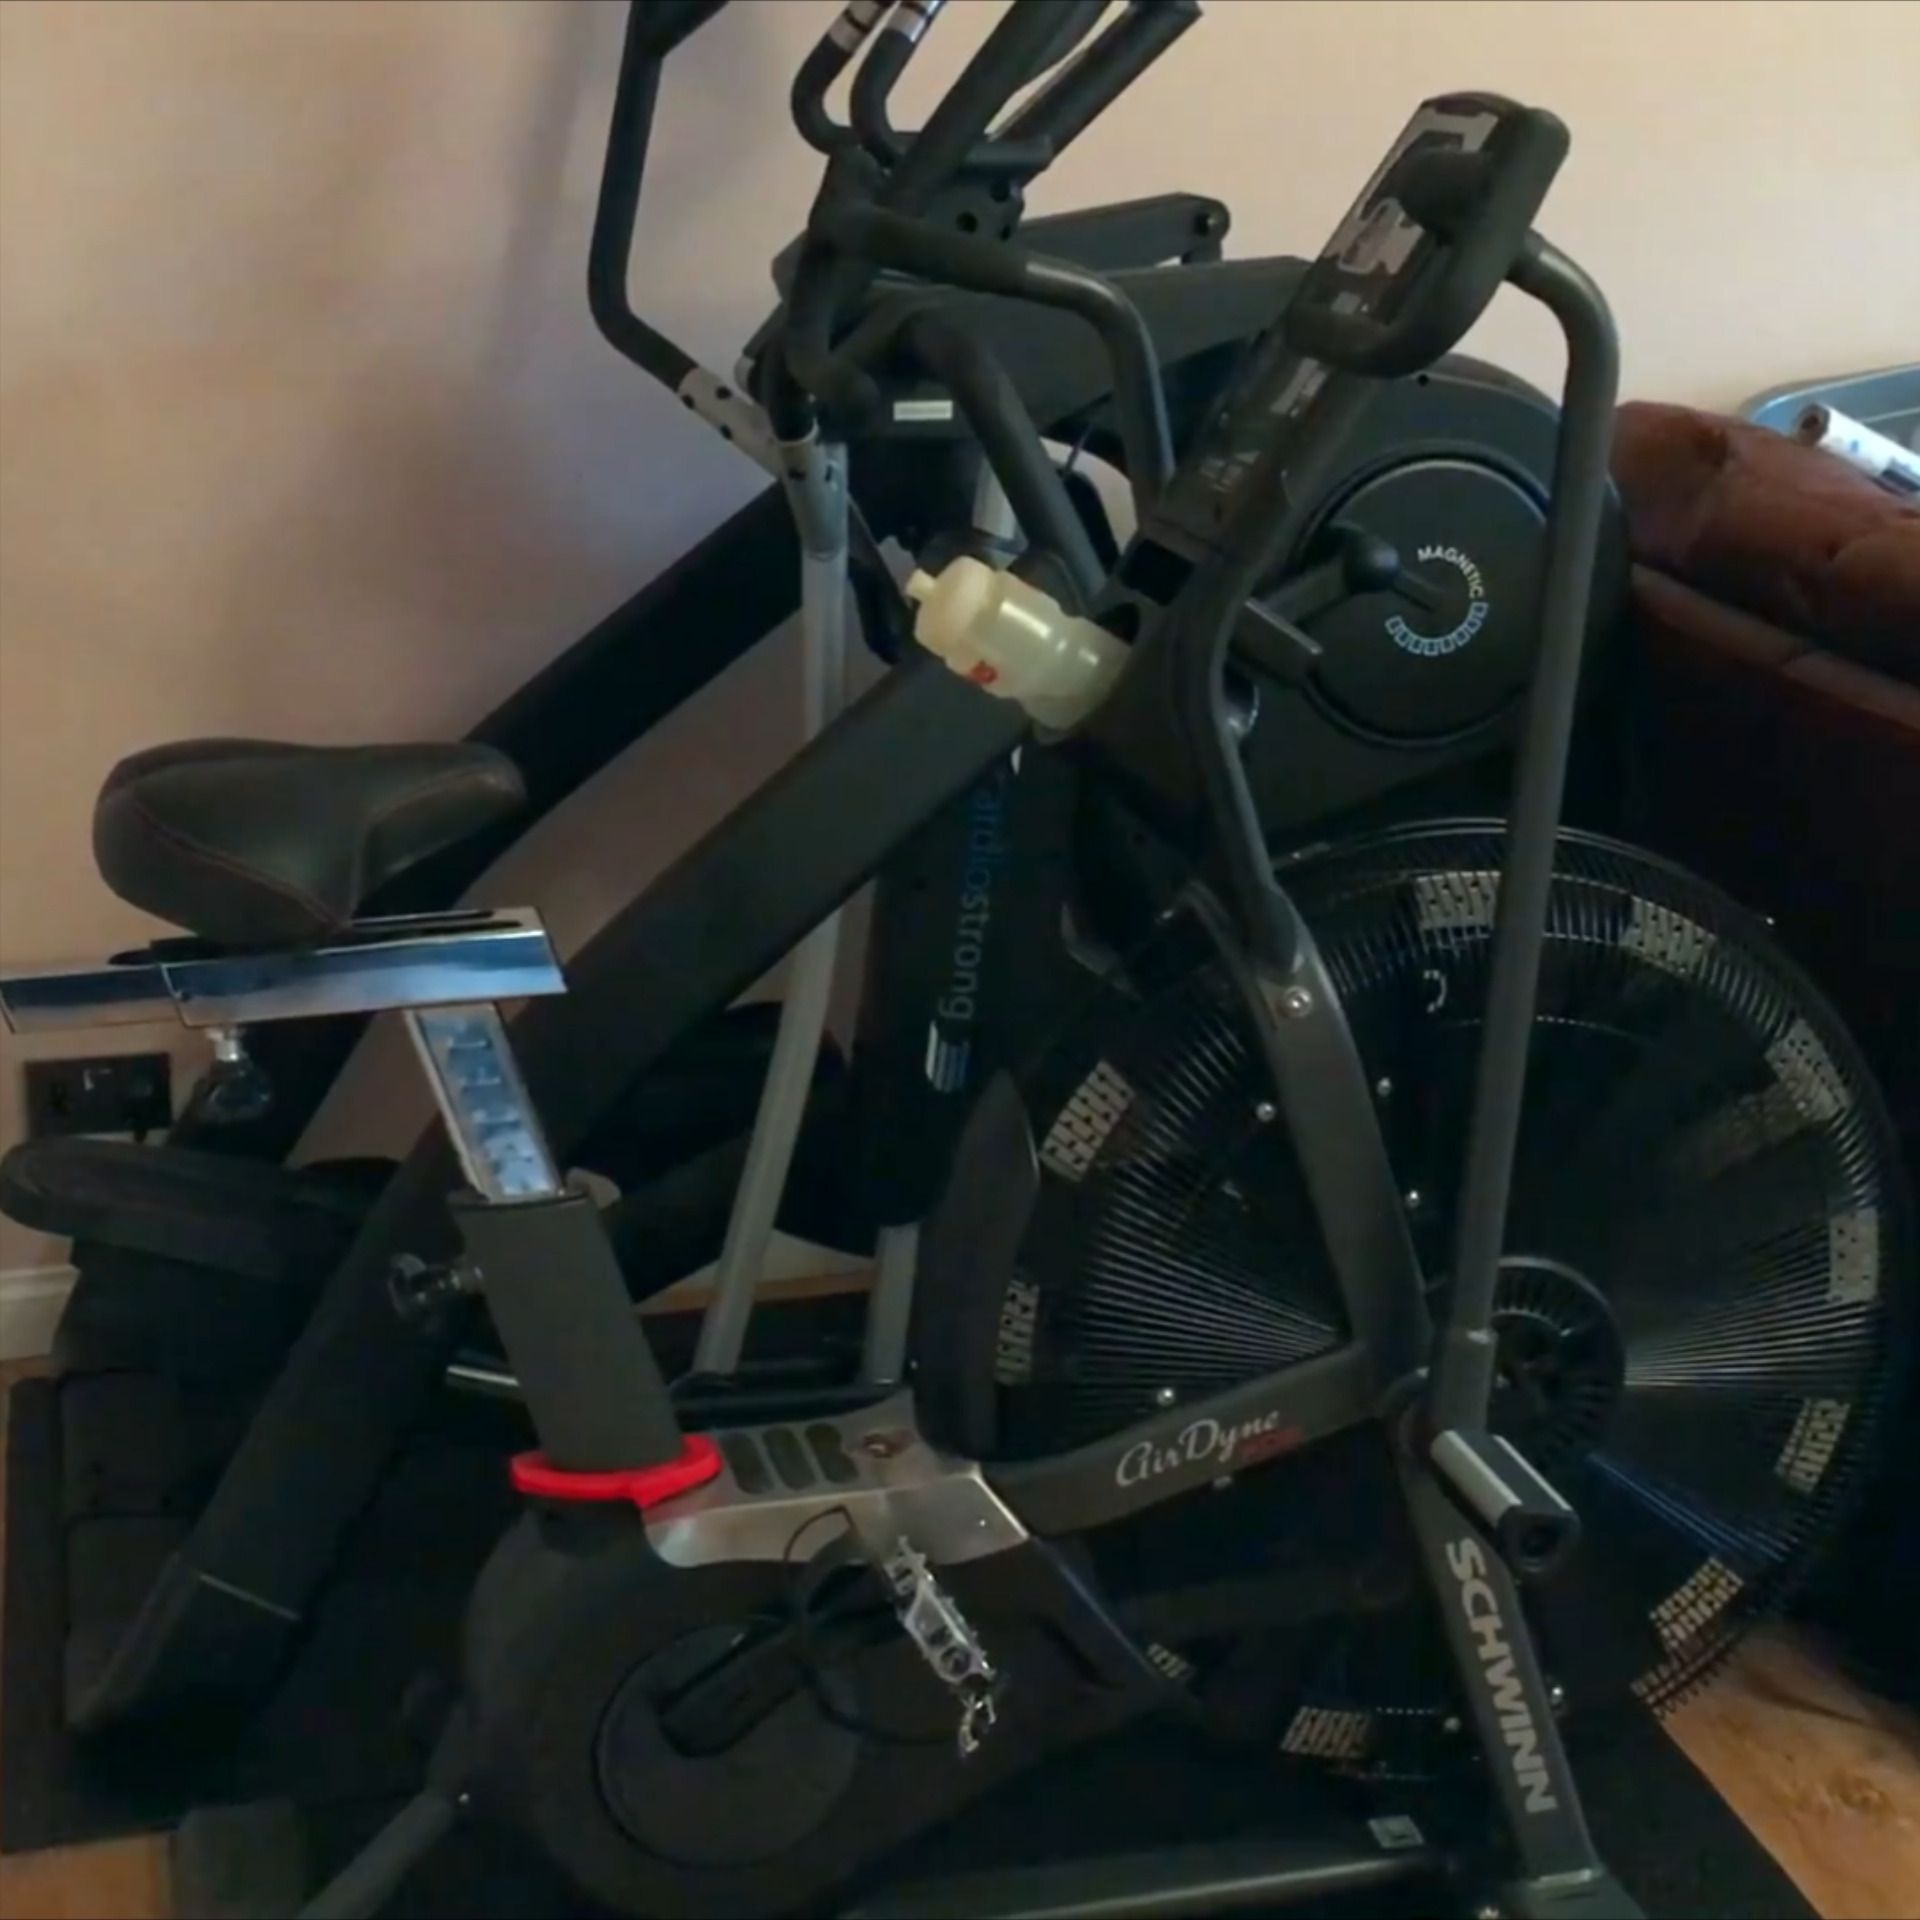 Schwinn Ad2 Review Stationary Bike Ebay Craigslist Airdyne Assault Bike Vs Airdyne Calories Airdyne Houston Biking Workout Schwinn Exercise Bikes